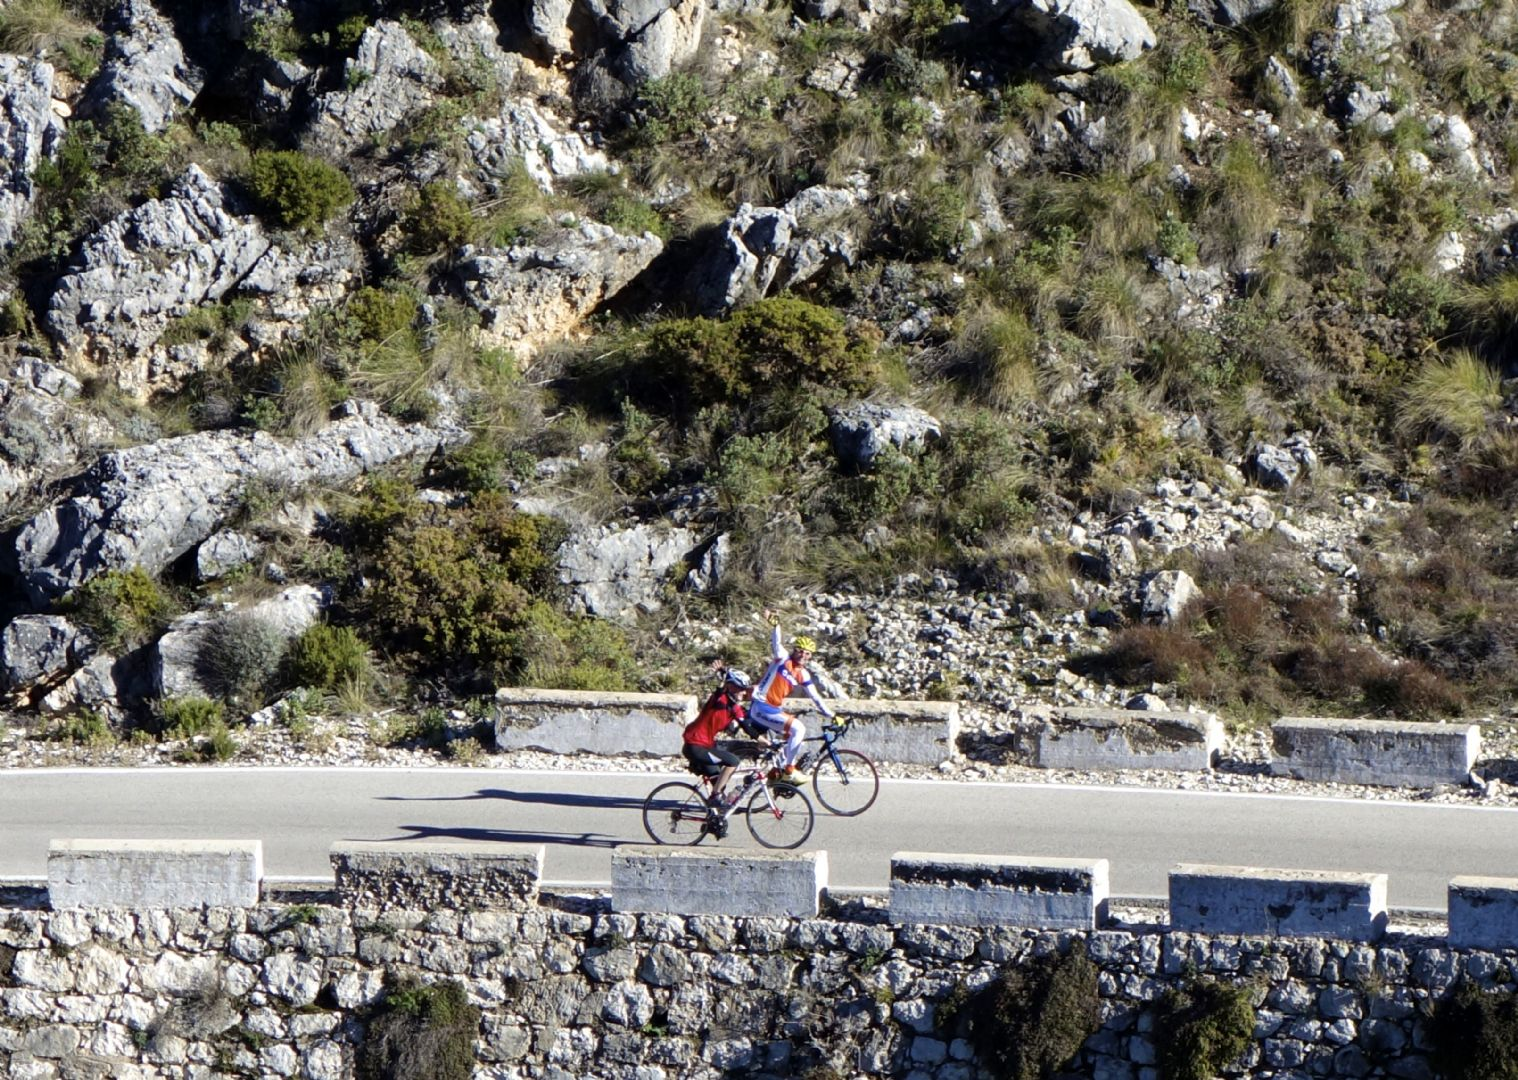 spainroadcyclingronda32.jpg - Southern Spain - Roads of Ronda - Road Cycling